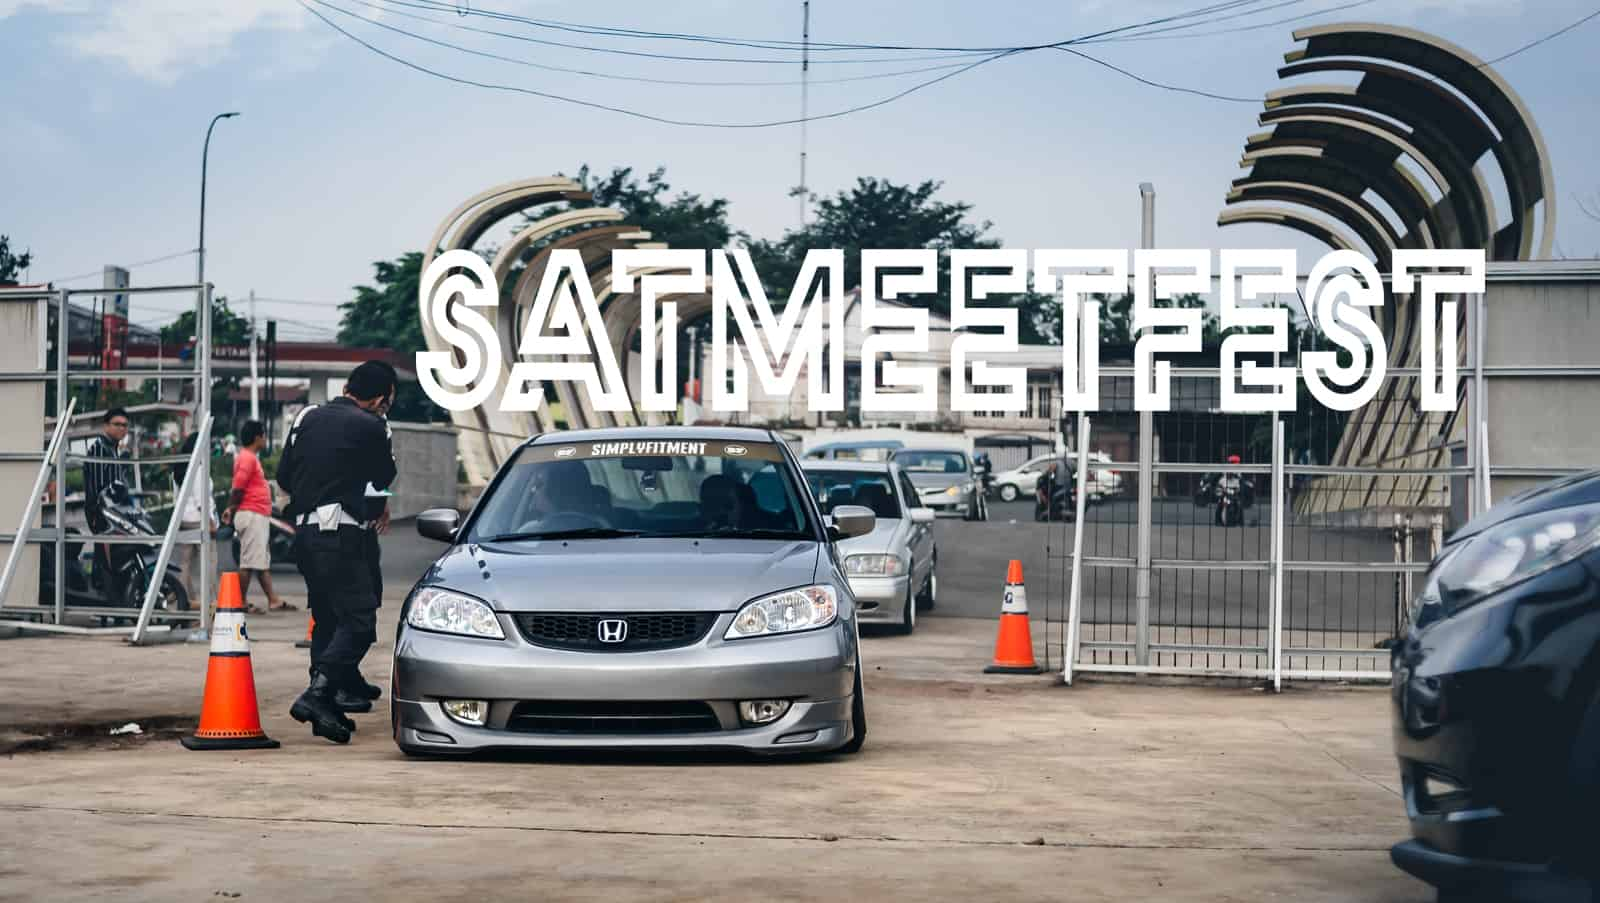 SATMEETFEST 1st Round di Prajawangsa City, April 2019